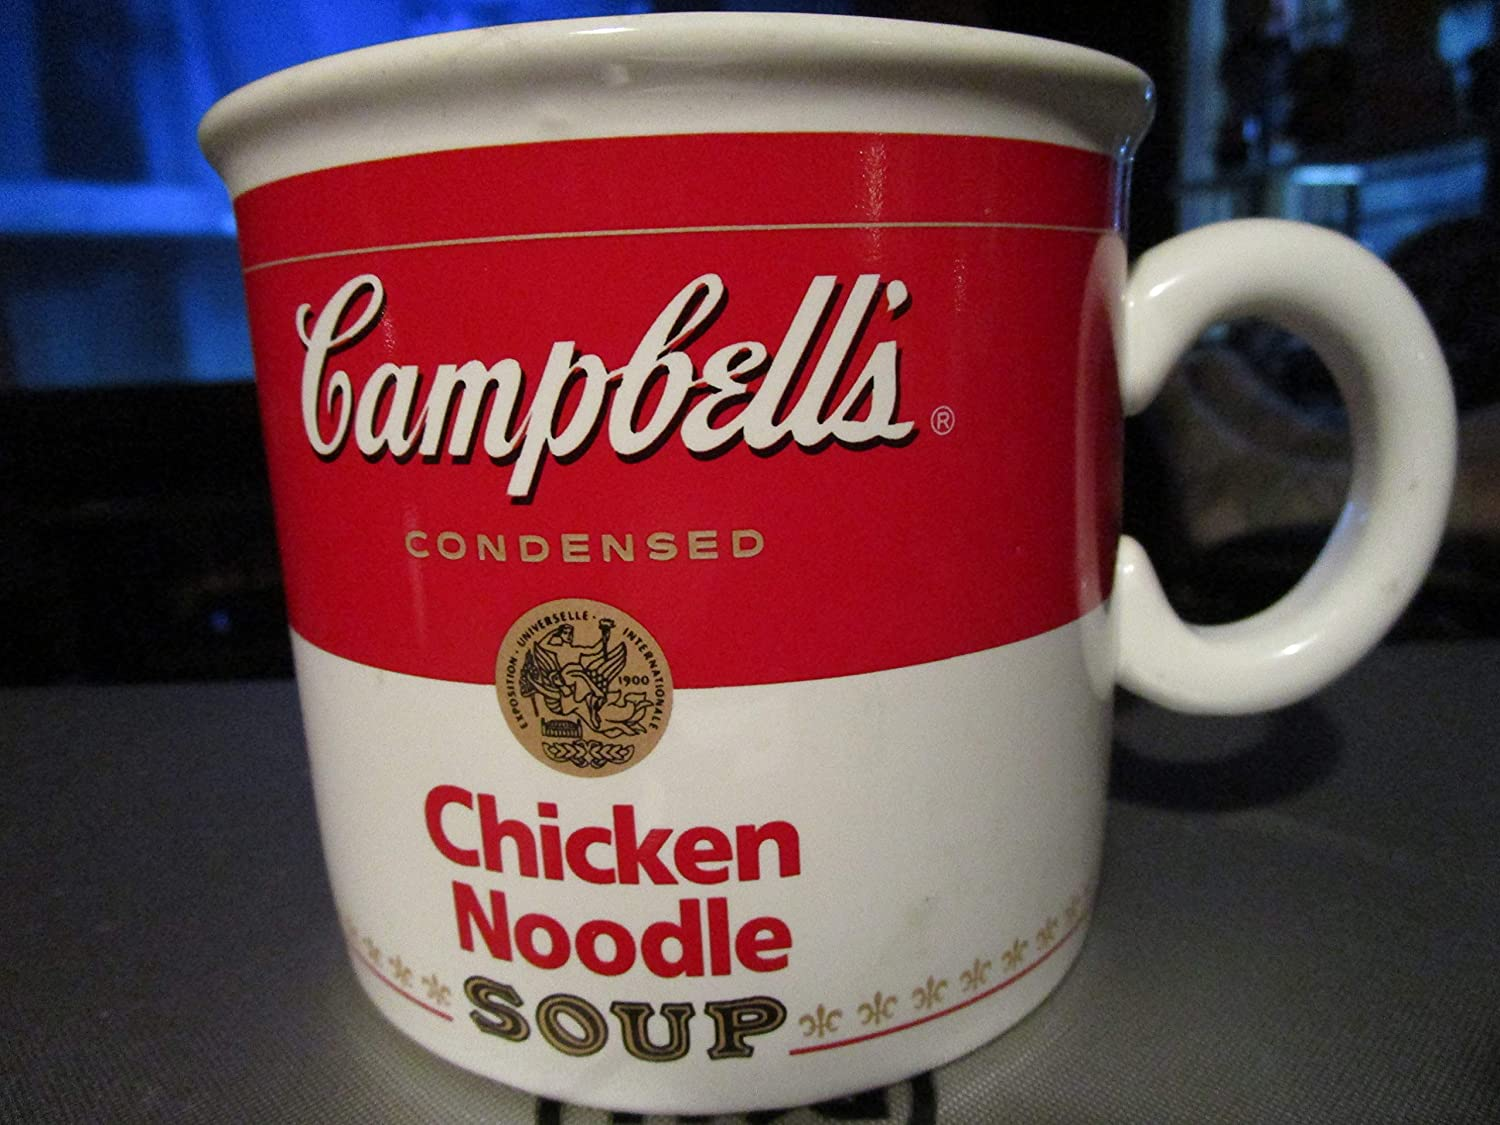 Campbell soup microwaveable mug great for all kinds of soup.